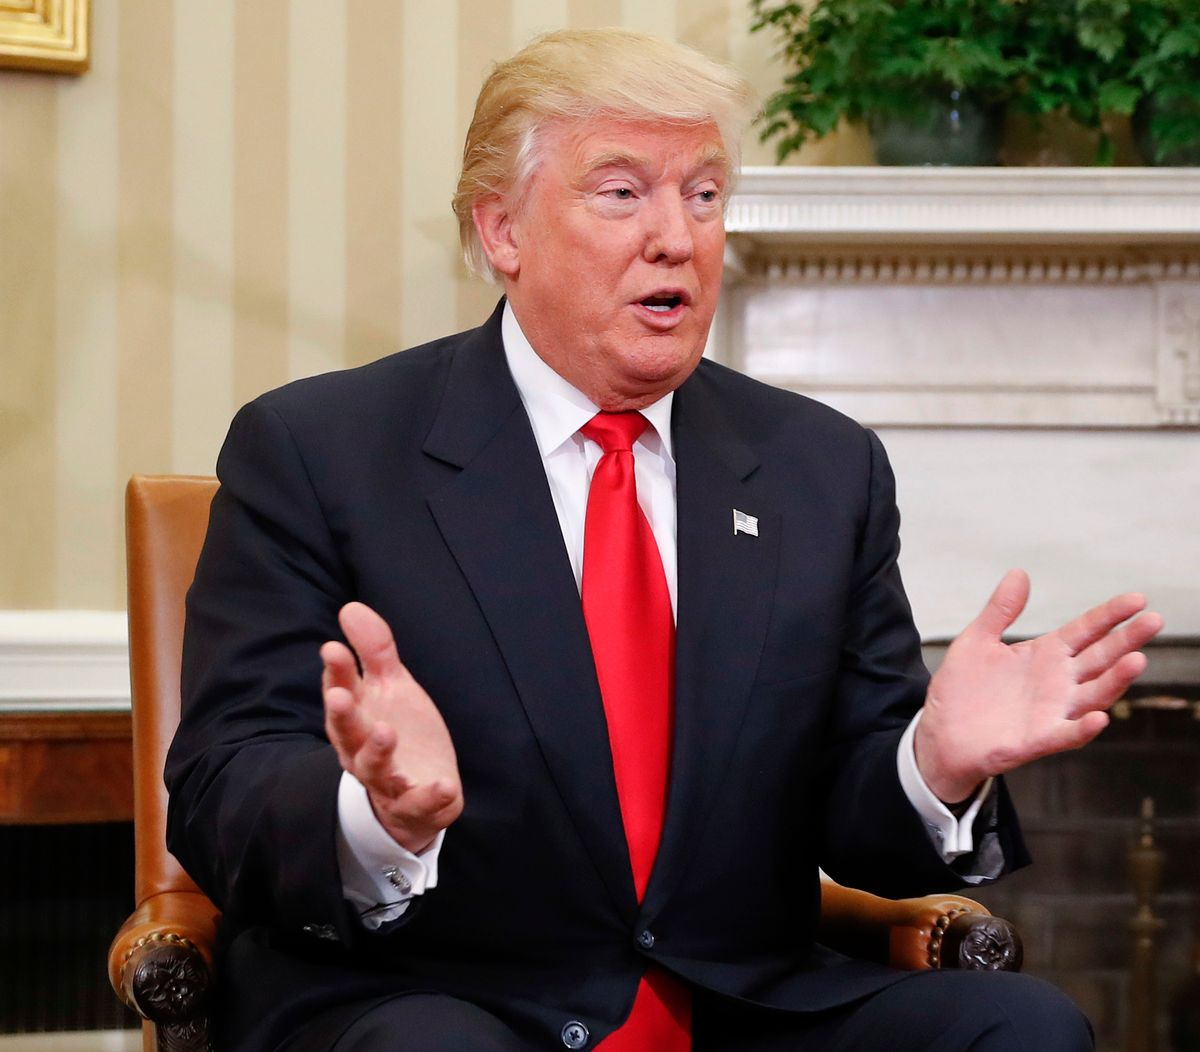 President-elect Donald Trump speaks during his meeting with President Barack Obama in the Oval Office of the White House in Washington, Thursday, Nov. 10, 2016. (AP)